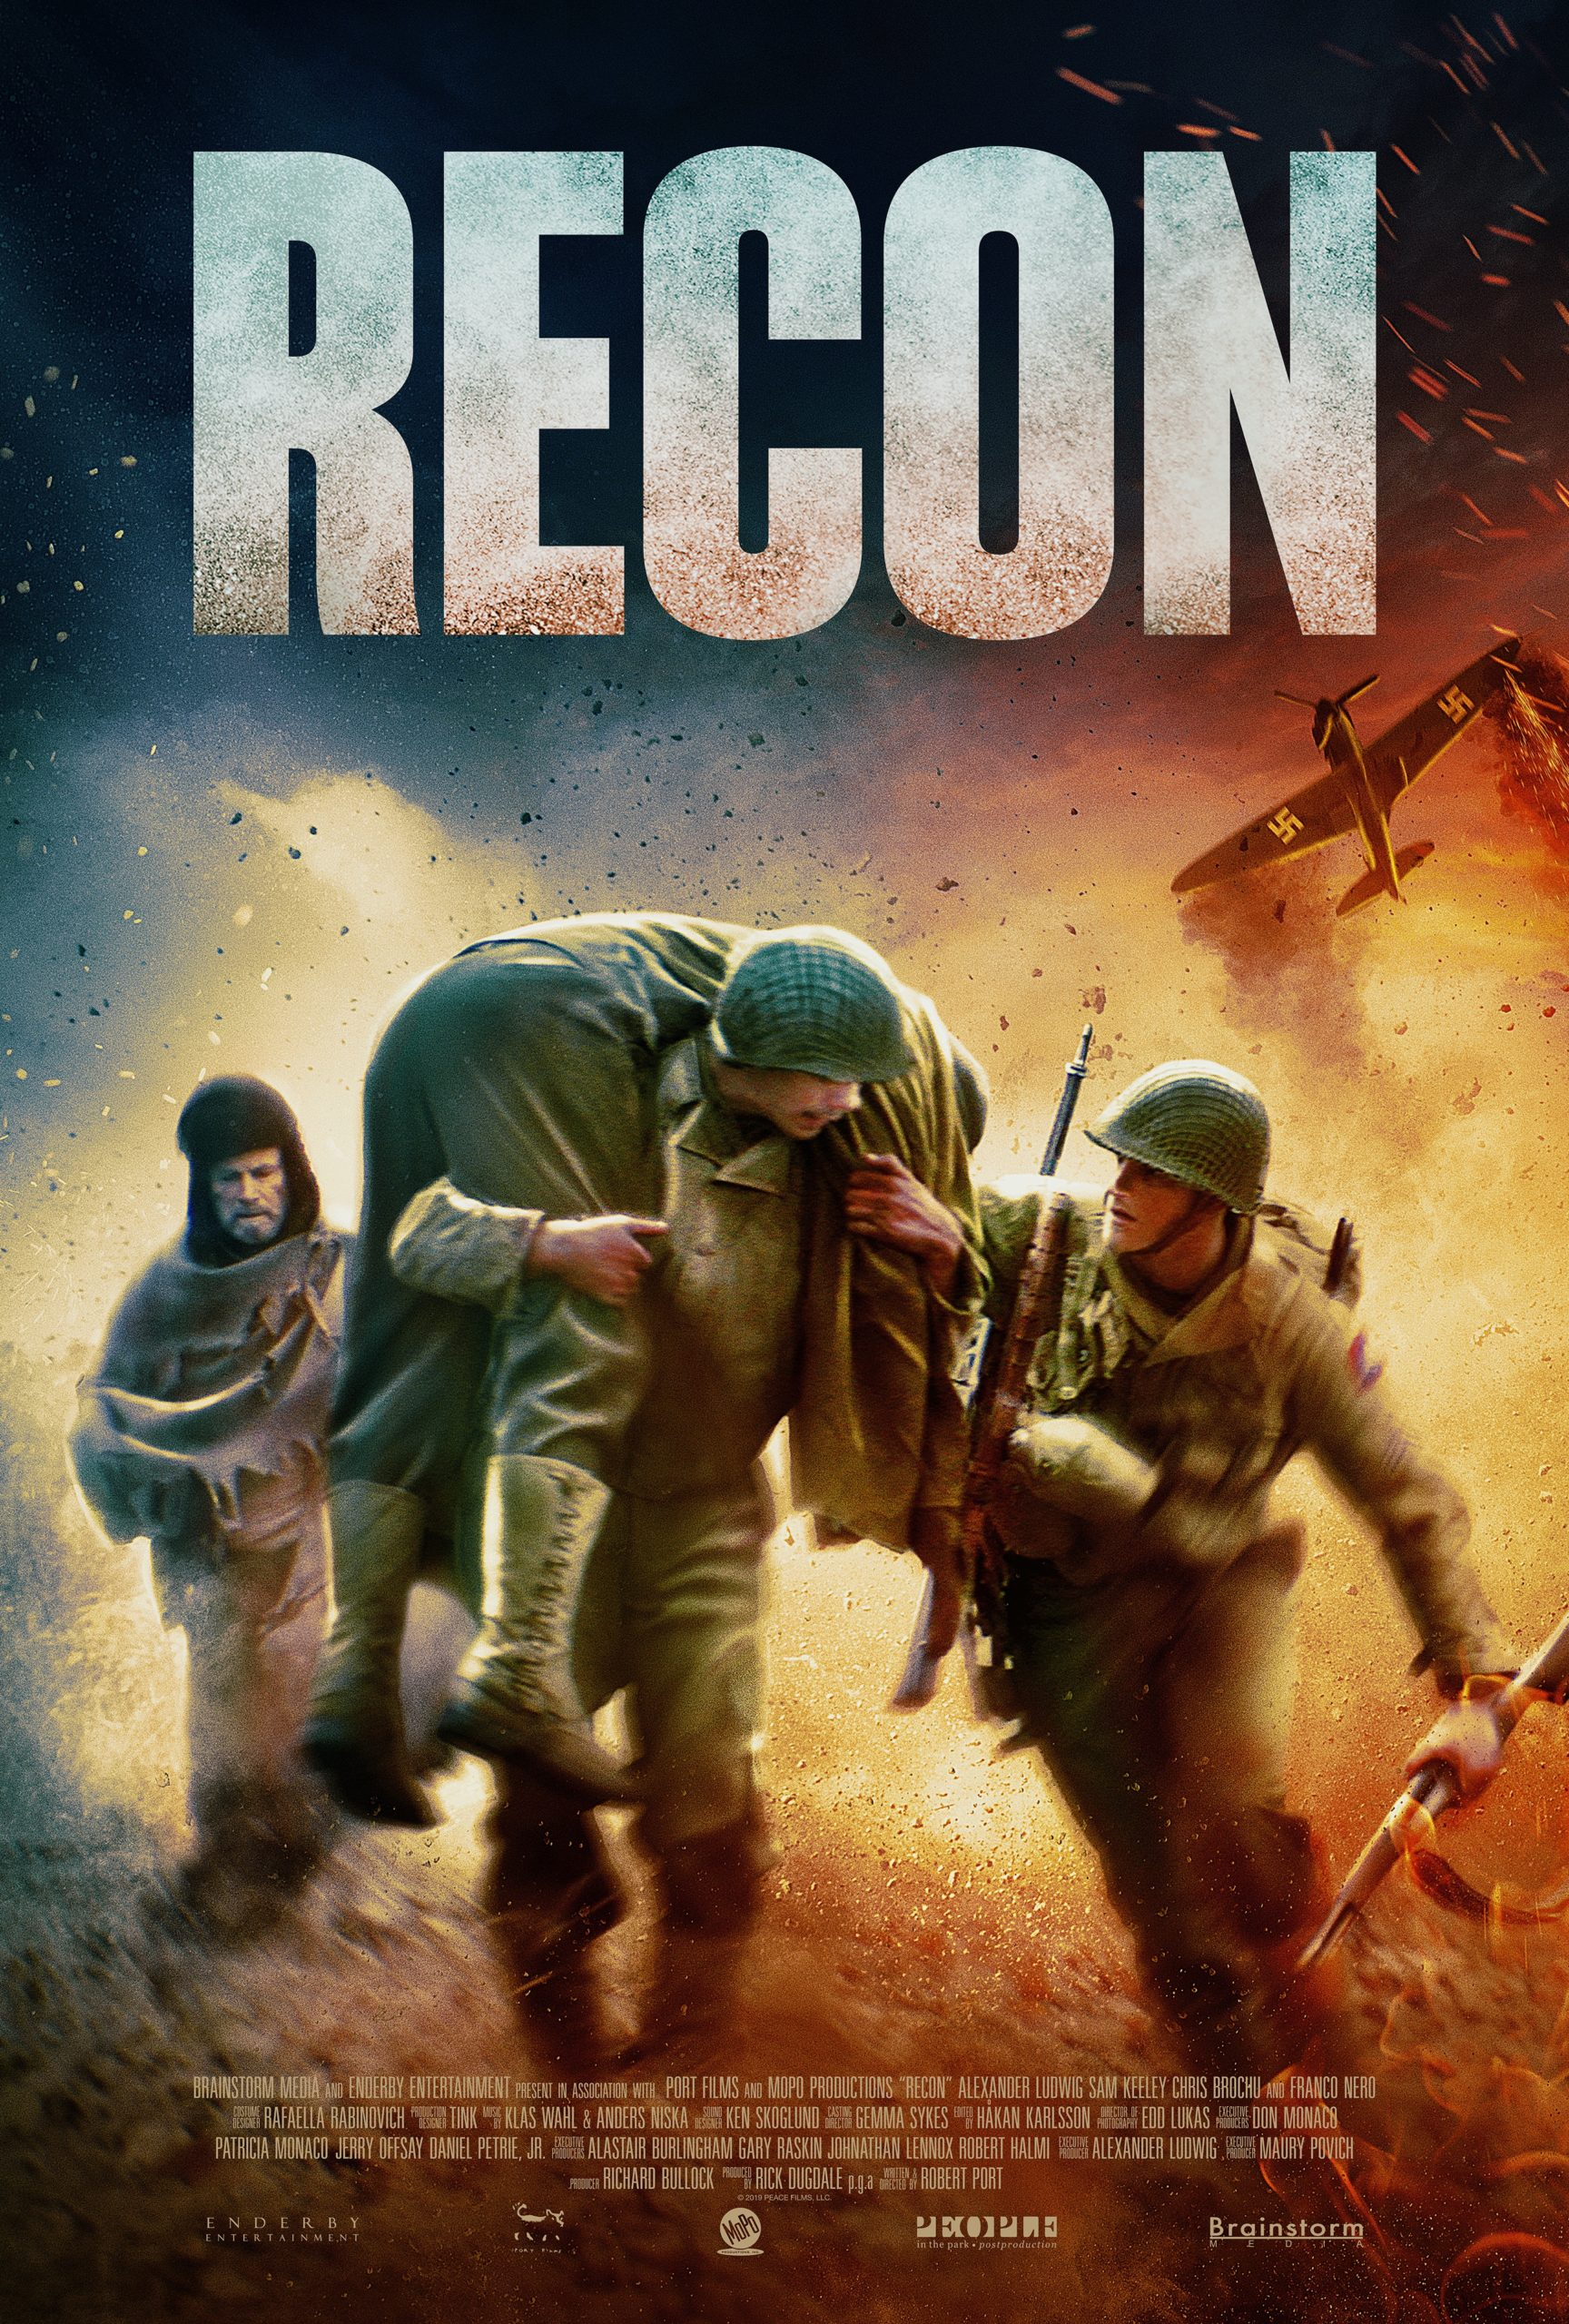 New Movie, Recon, Recounts WWII Story - Military Living